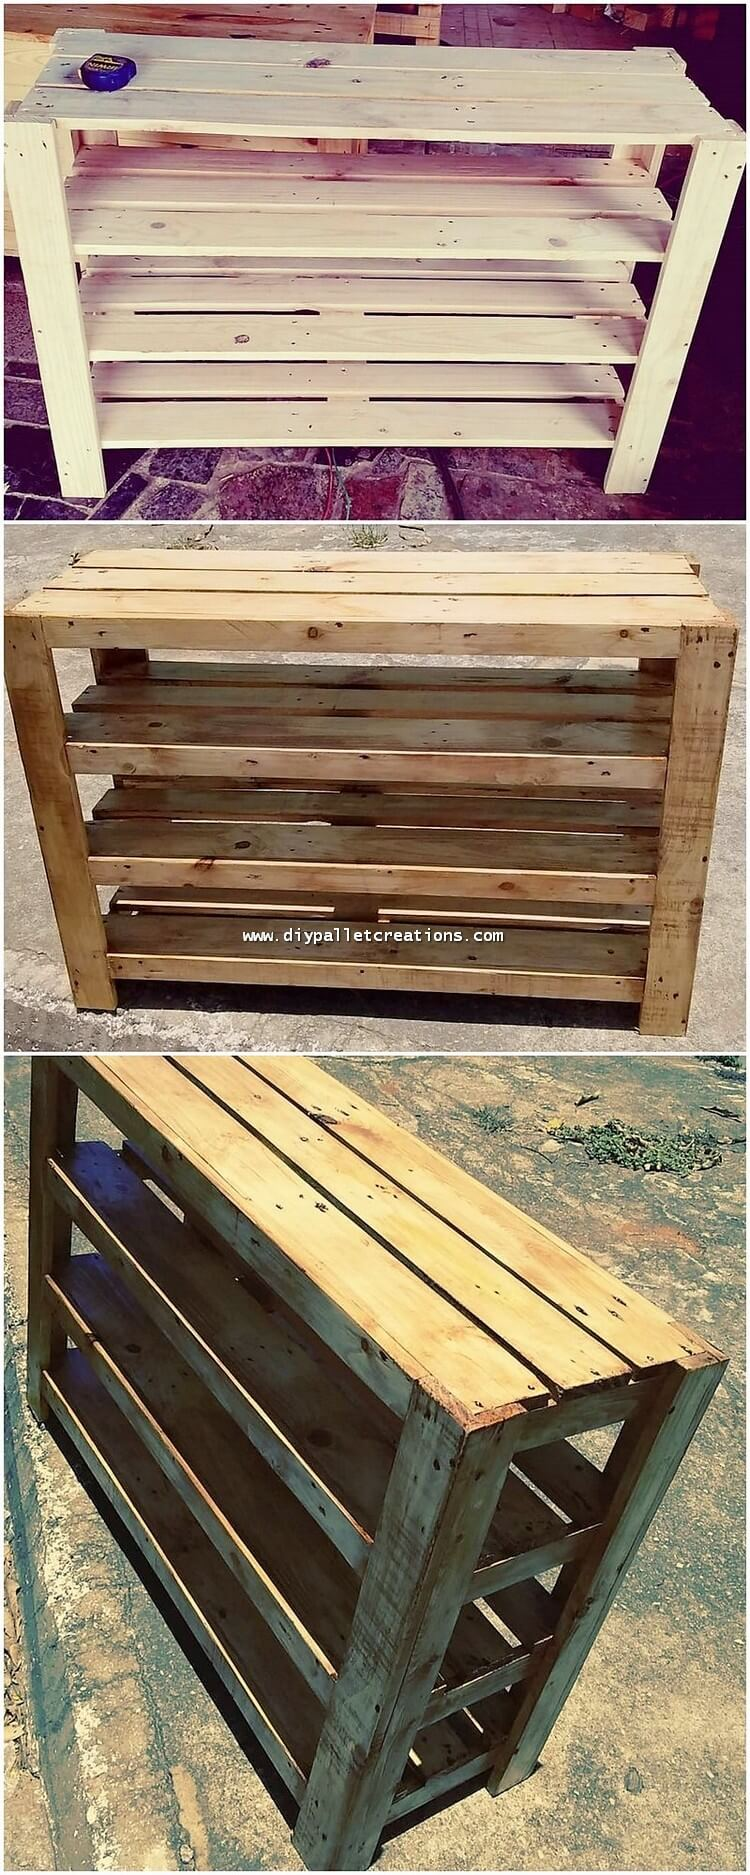 Wooden Pallet Shelving Table